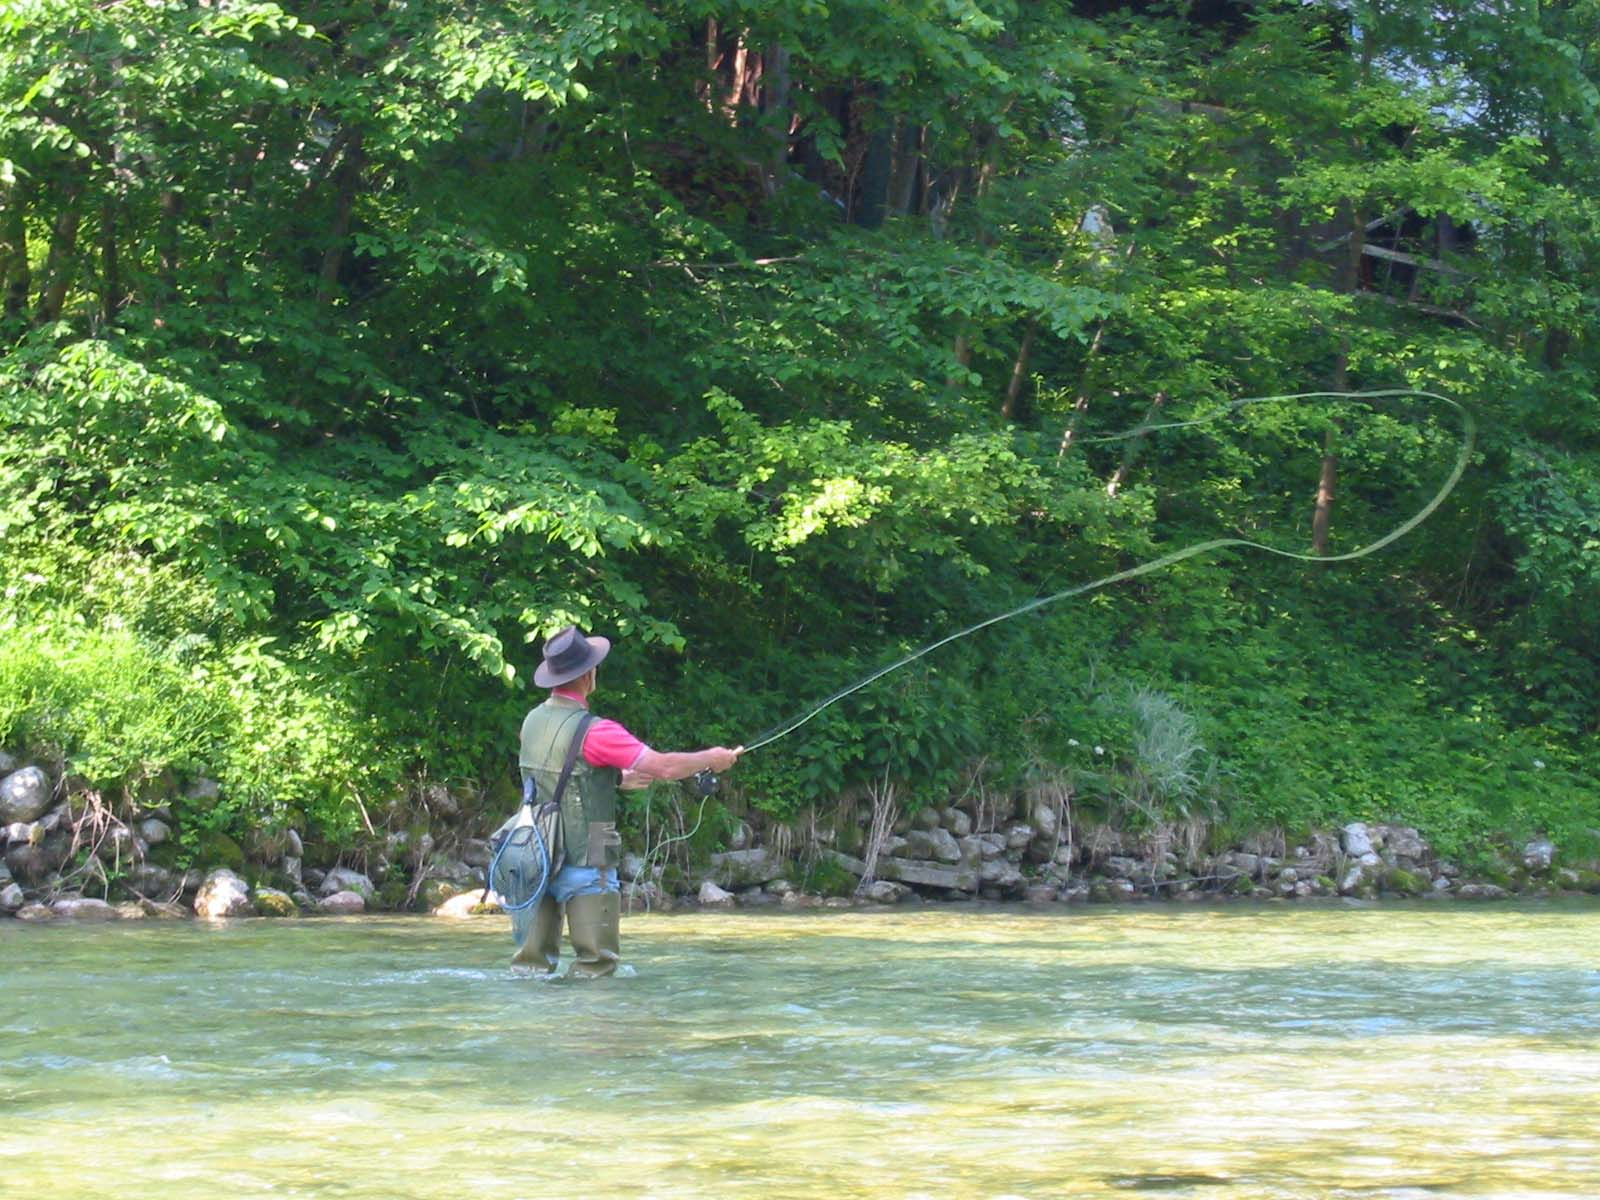 Strategies for Fishing Moving Water